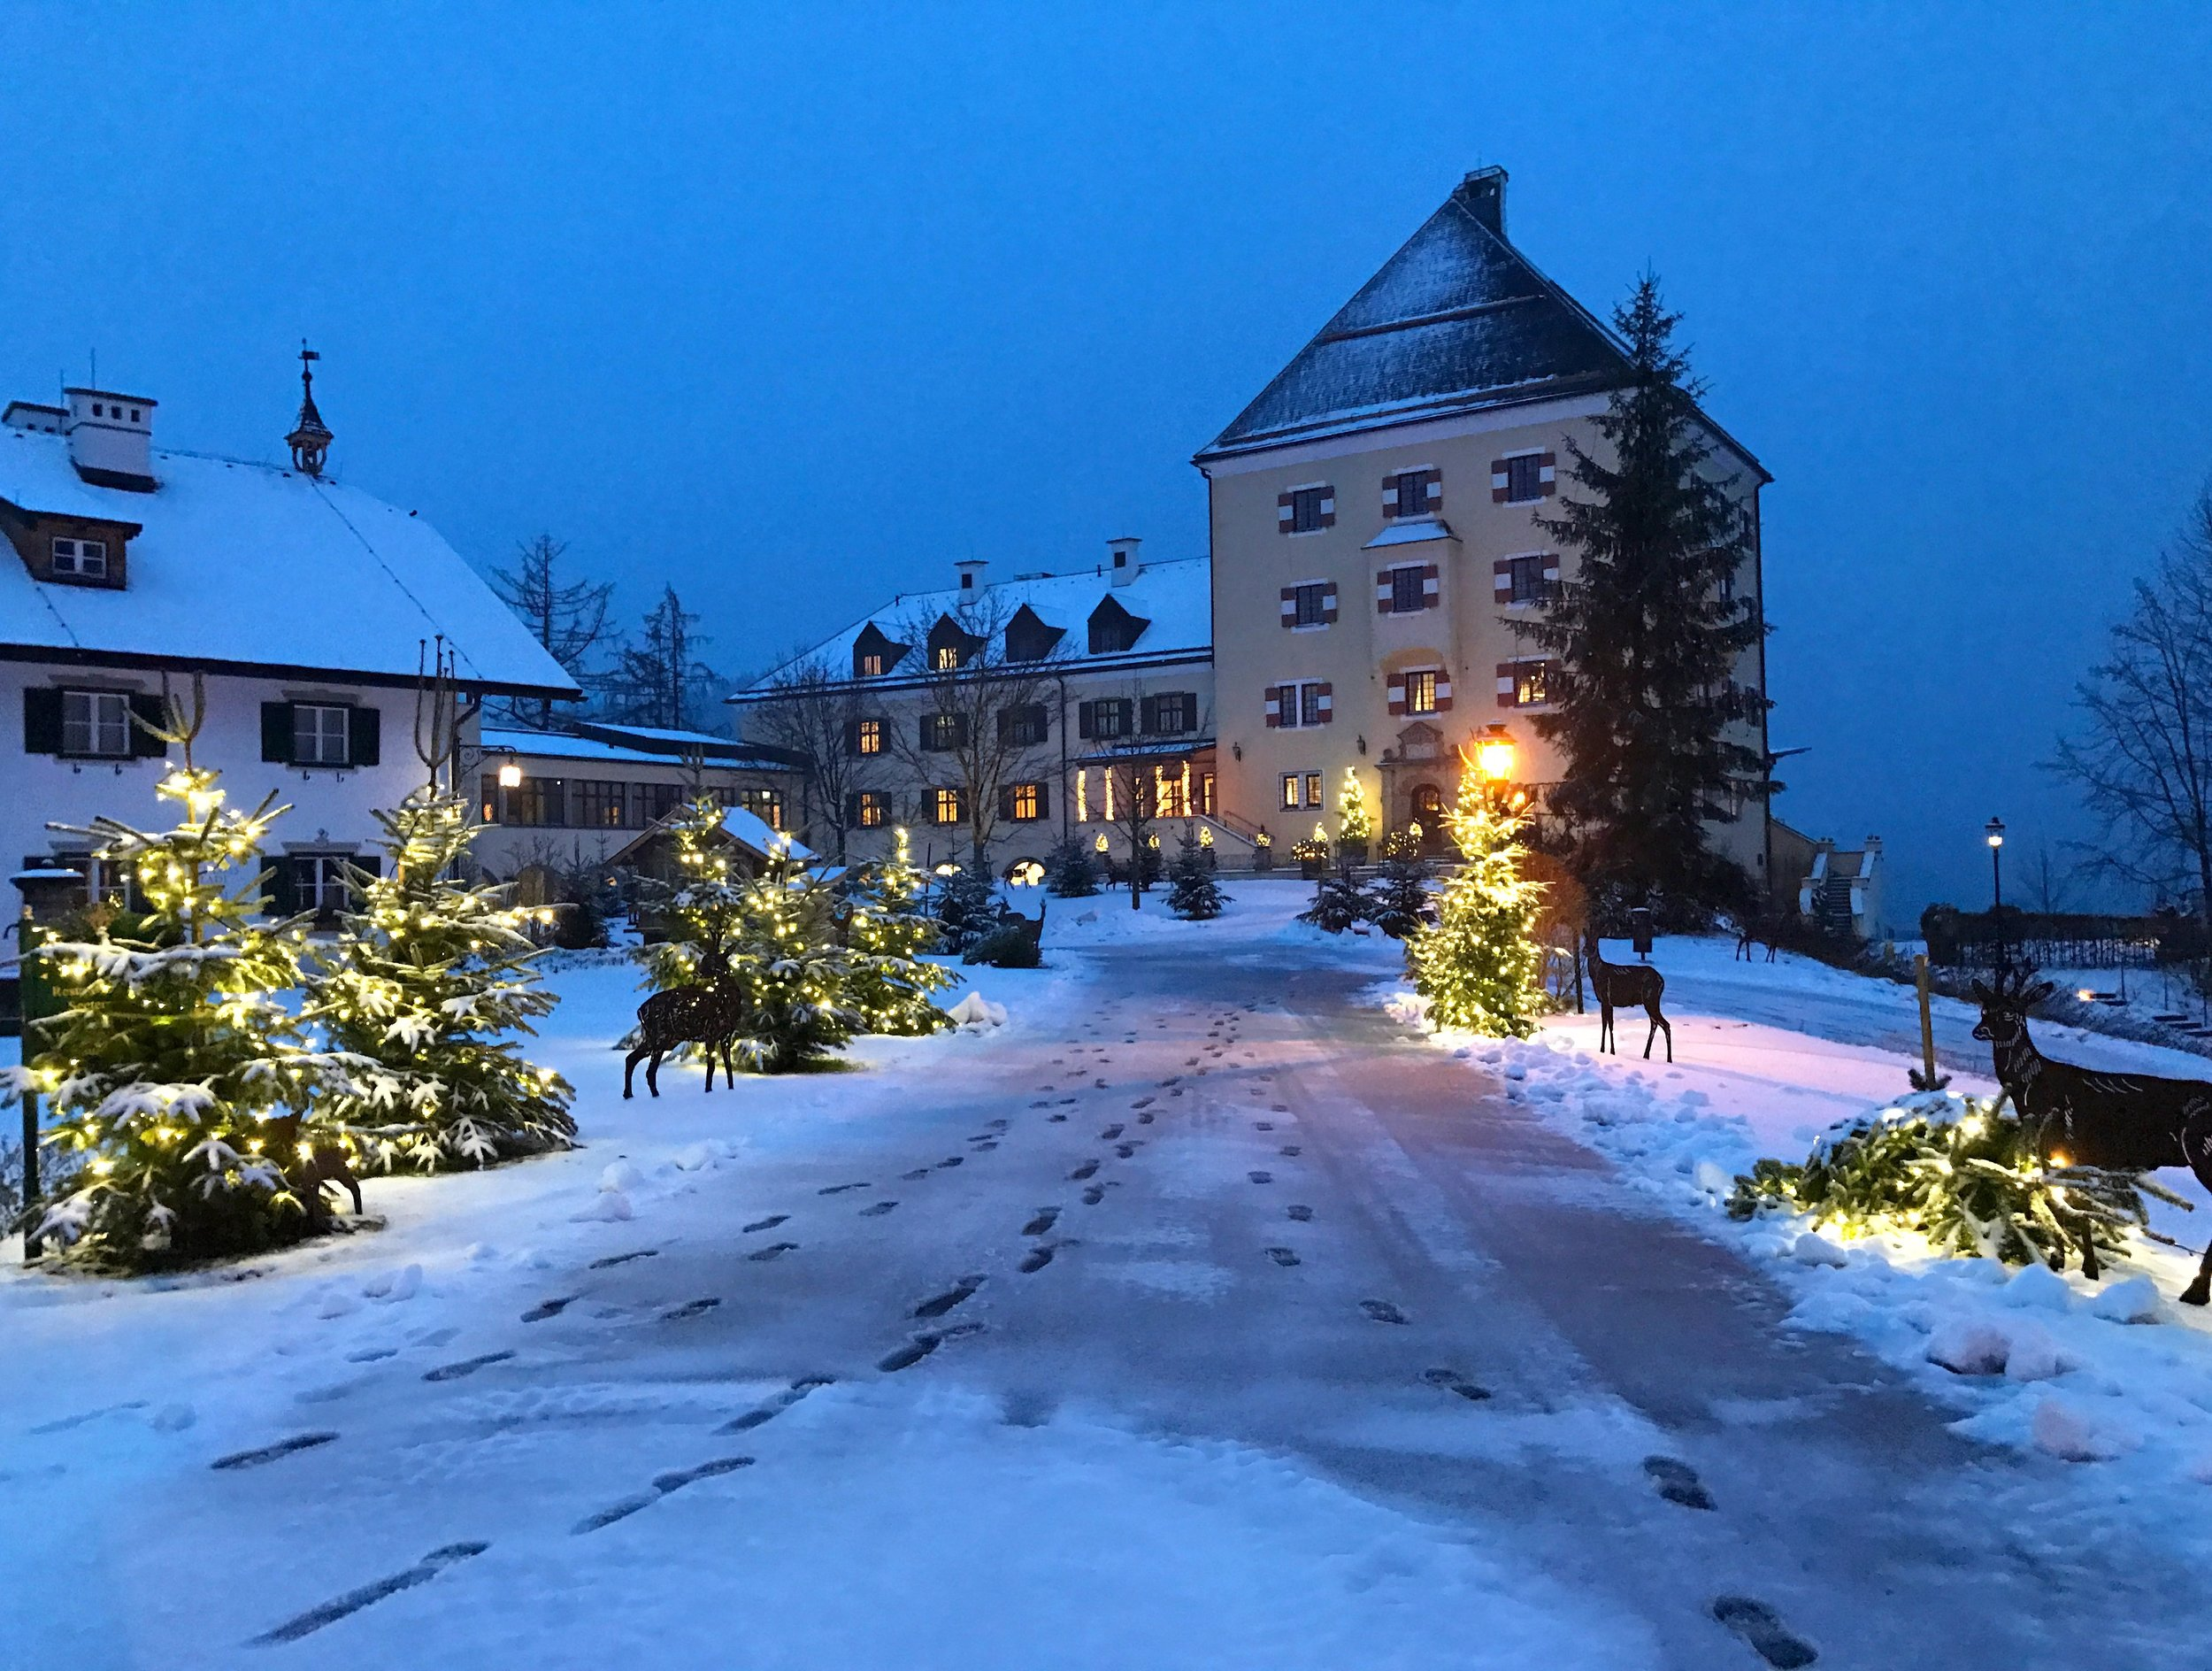 Feels like the perfect Christmas here at Schloss Fuschl. Wish I could wake up to this sight every early morning